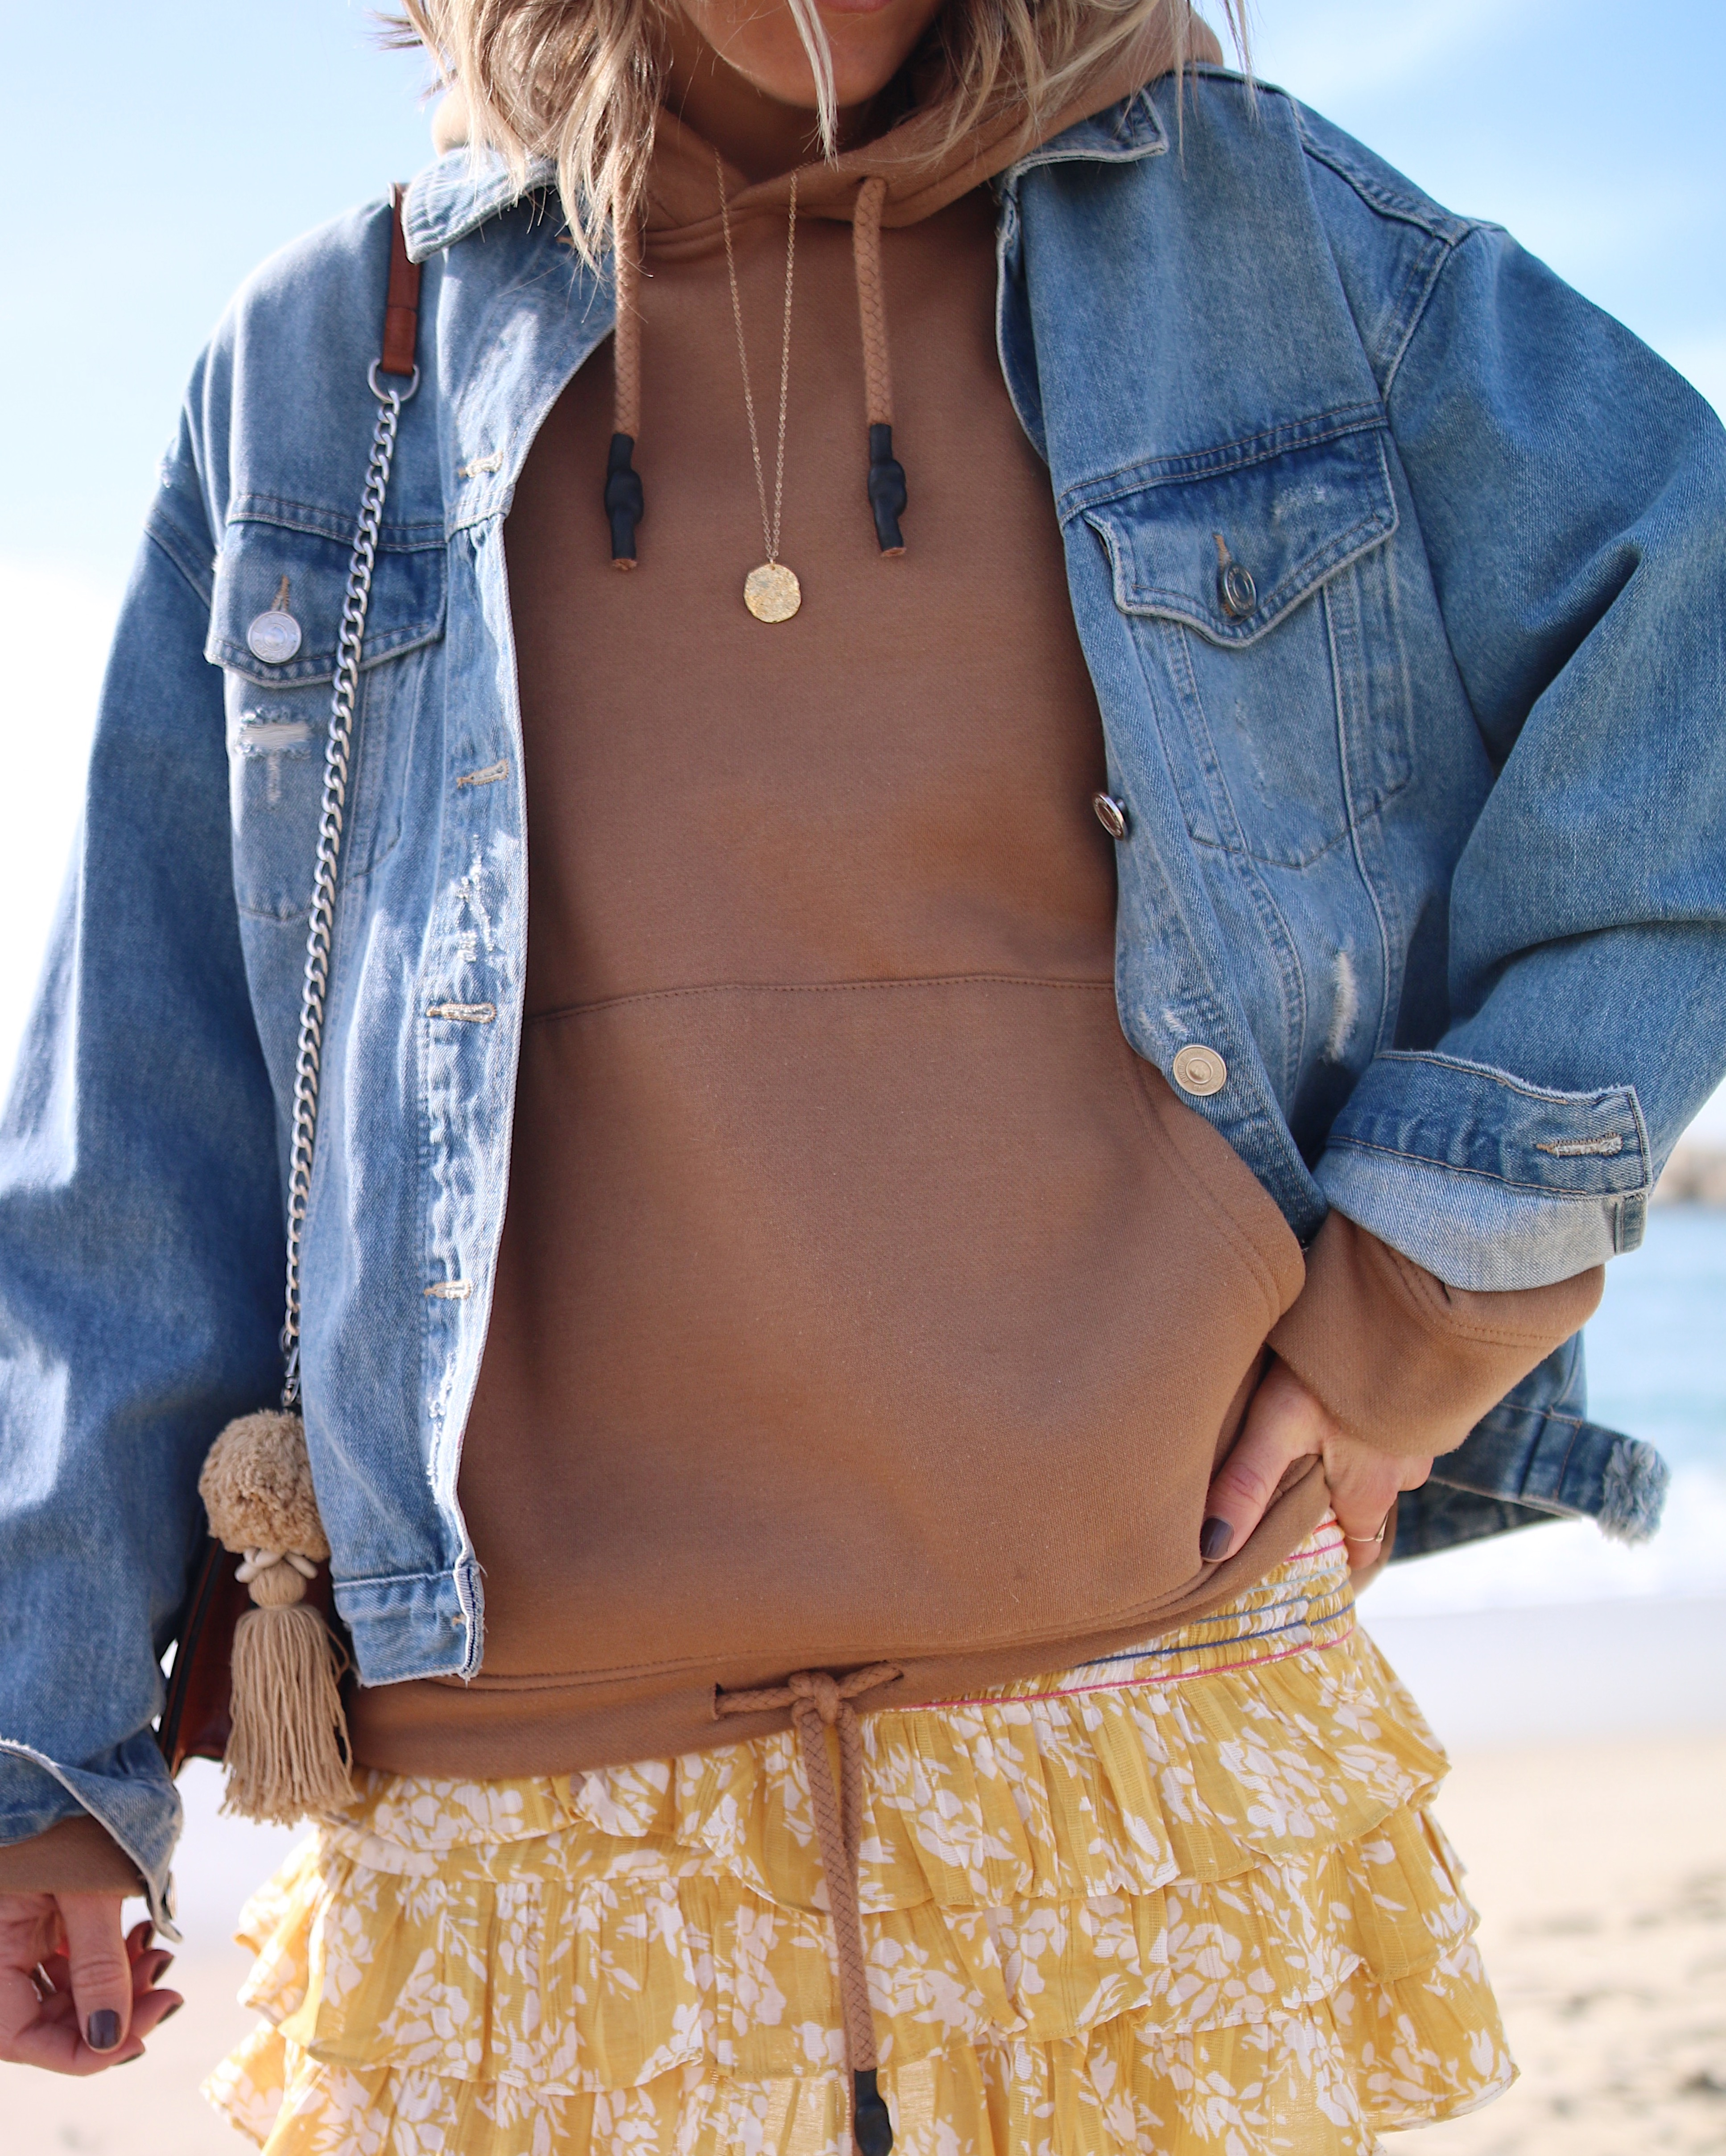 MINI MINI - Chon & CHON -mini skirt from Tularosa, casual style, outfit inspiration, sweater lover, beach outfit, mini jupe et gros sweat, hoodie style